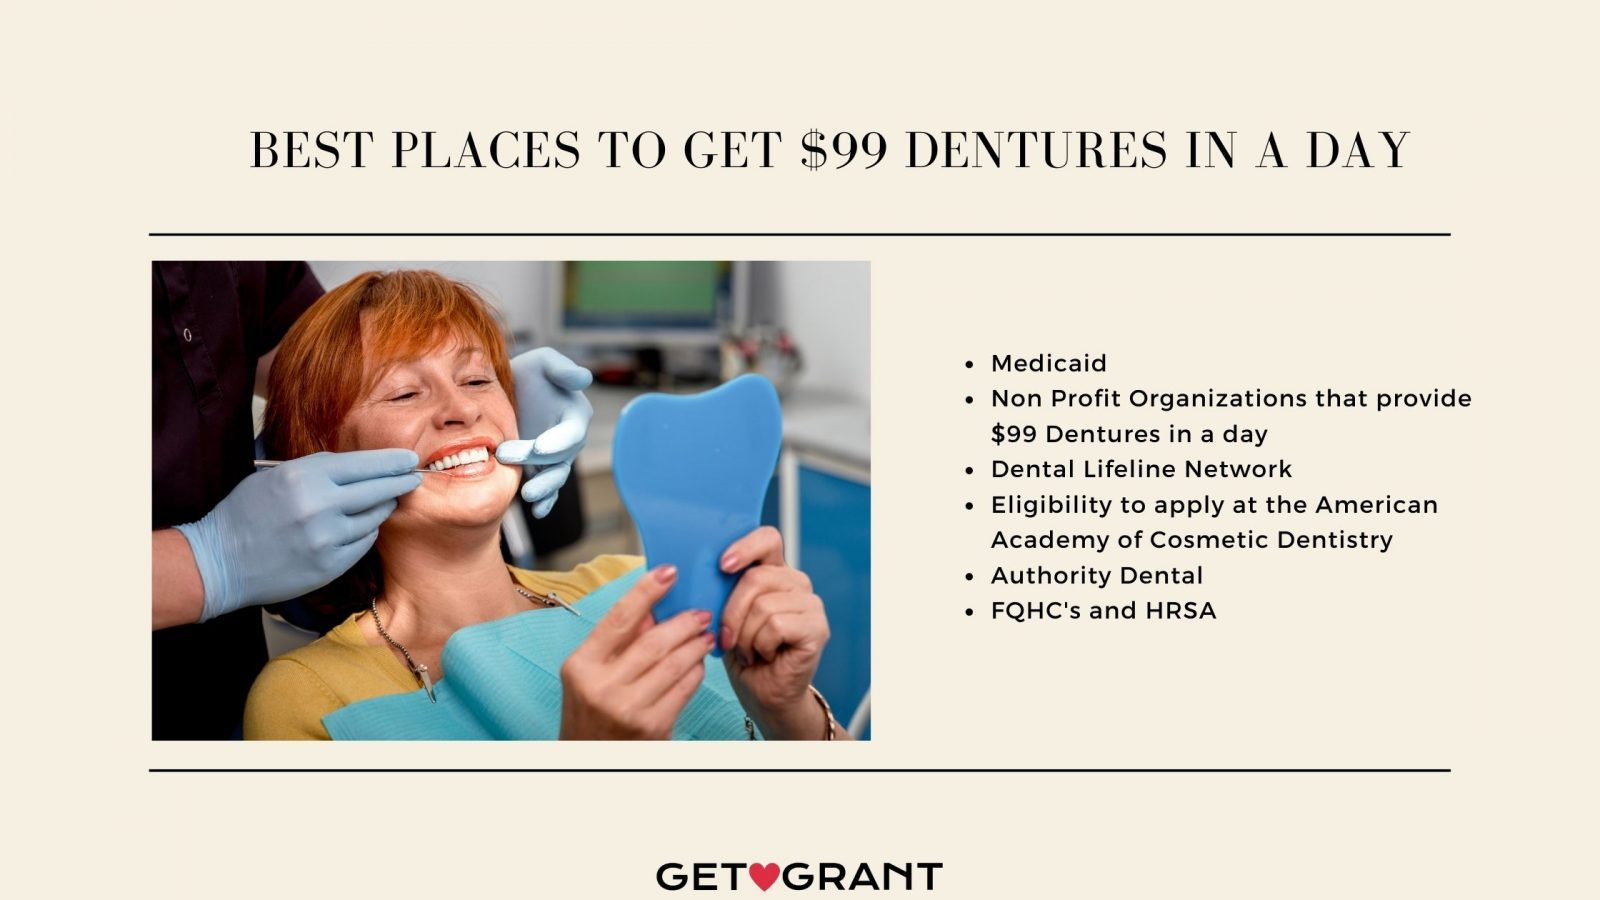 $99 dentures in a day,$99 dentures in a day,how long do immediate dentures last,premium dentures cost,affordable dentures pictures,affordable dentures and implants prices,aspen dental vs affordable dentures,affordable dentures online,immediate dentures cost,low-cost dentures for seniors,best dentures in the world,ultra premium dentures cost,what is the difference between economy and premium dentures,premium dentures near me,extractions and dentures in the same day,affordable dentures locations,ultimate fit dentures,flexible full dentures online,dentures online usa,affordable dentures wiki,affordable dentures reviews,affordable dentures prices,dentures under $400 near me,dentist who specializes in dentures,affordable dentures prices list,aspen dental dentures reviews,aspen dental price list,what are the best dentures made of,types of dentures and cost,best looking dentures,types of flexible dentures,flexible dentures reviews,best fitting dentures,newest dentures available,best dentures 2019,affordable dentures,permanent dentures cost 2018,are immediate dentures permanent,getting immediate dentures what to expect,immediate dentures pictures,immediate dentures vs waiting,dentures near me